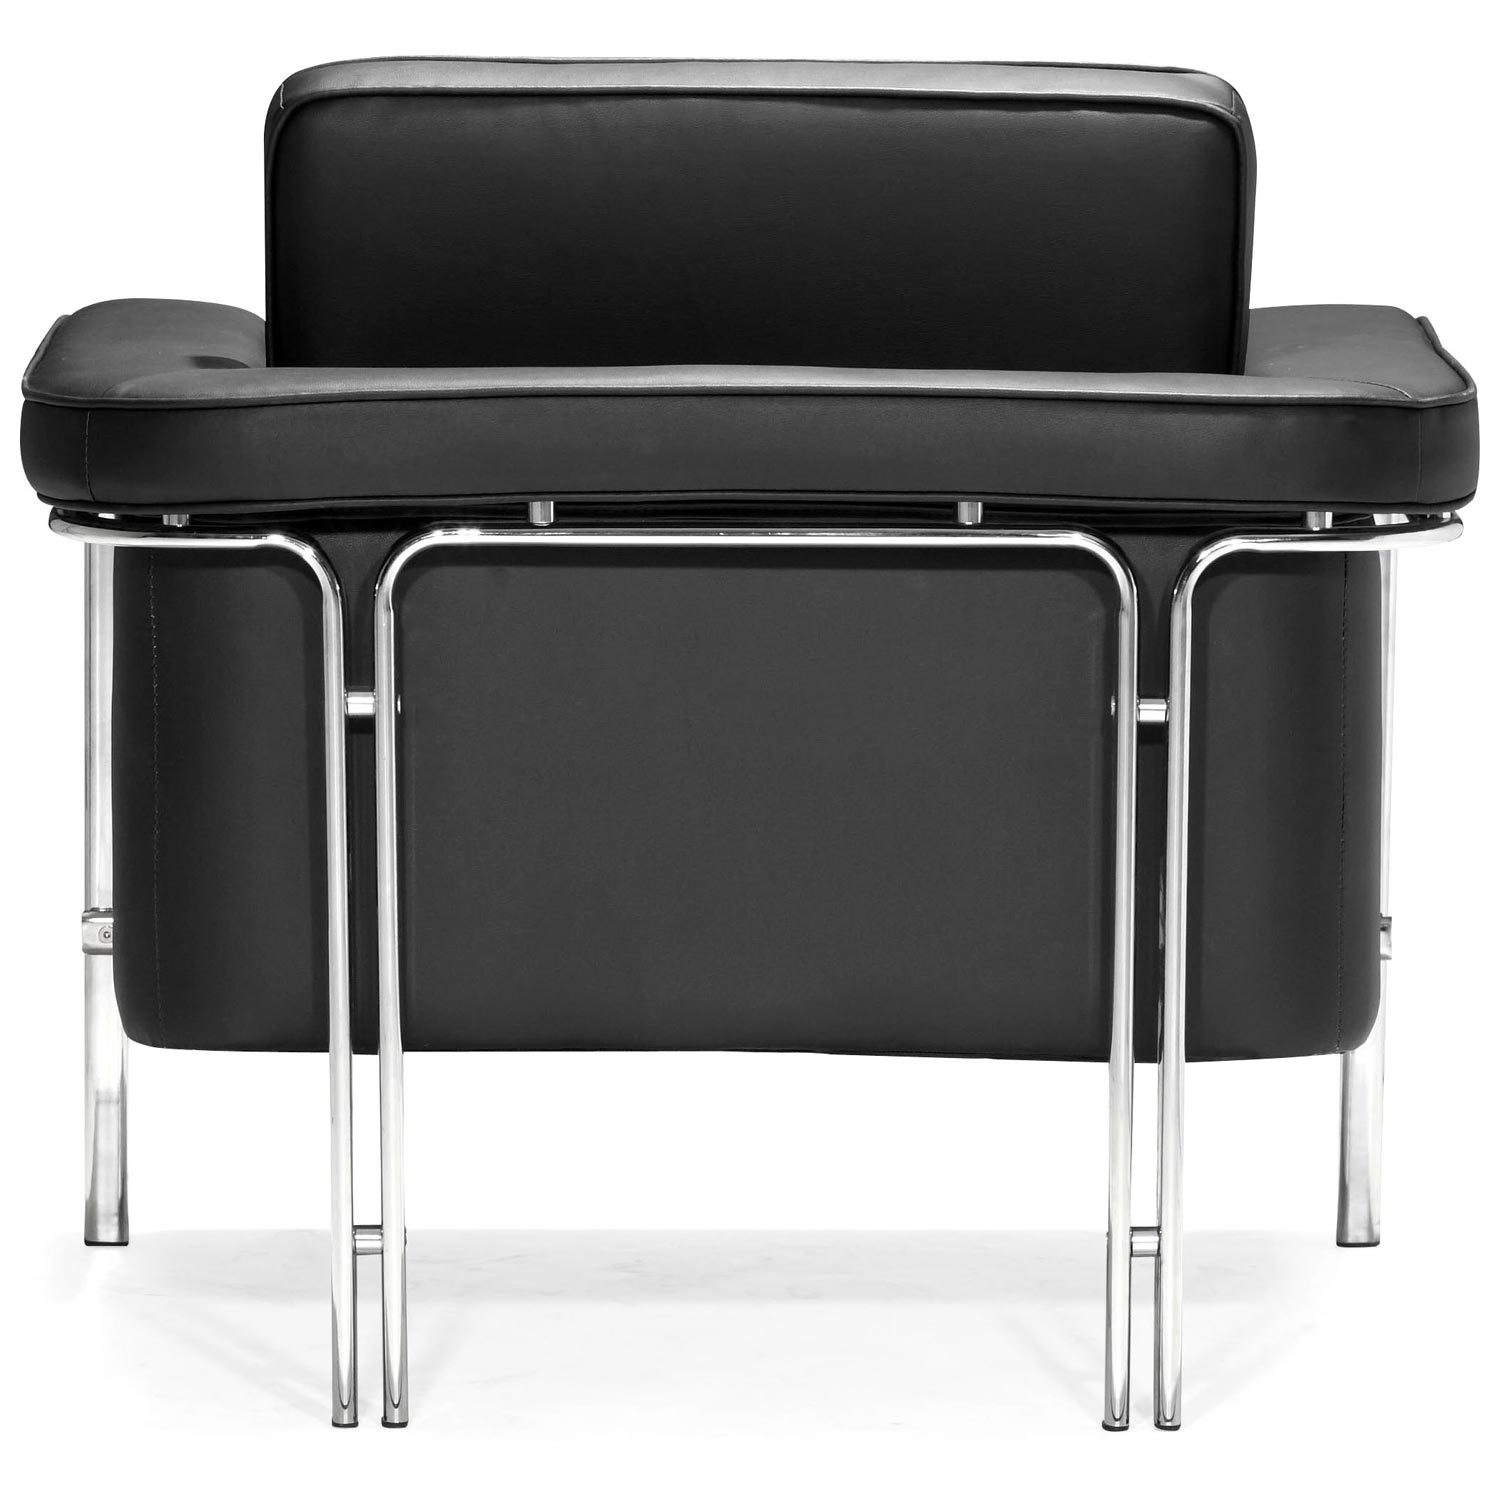 Singular Modern Armchair - Chrome Steel, Black - ZM-900160